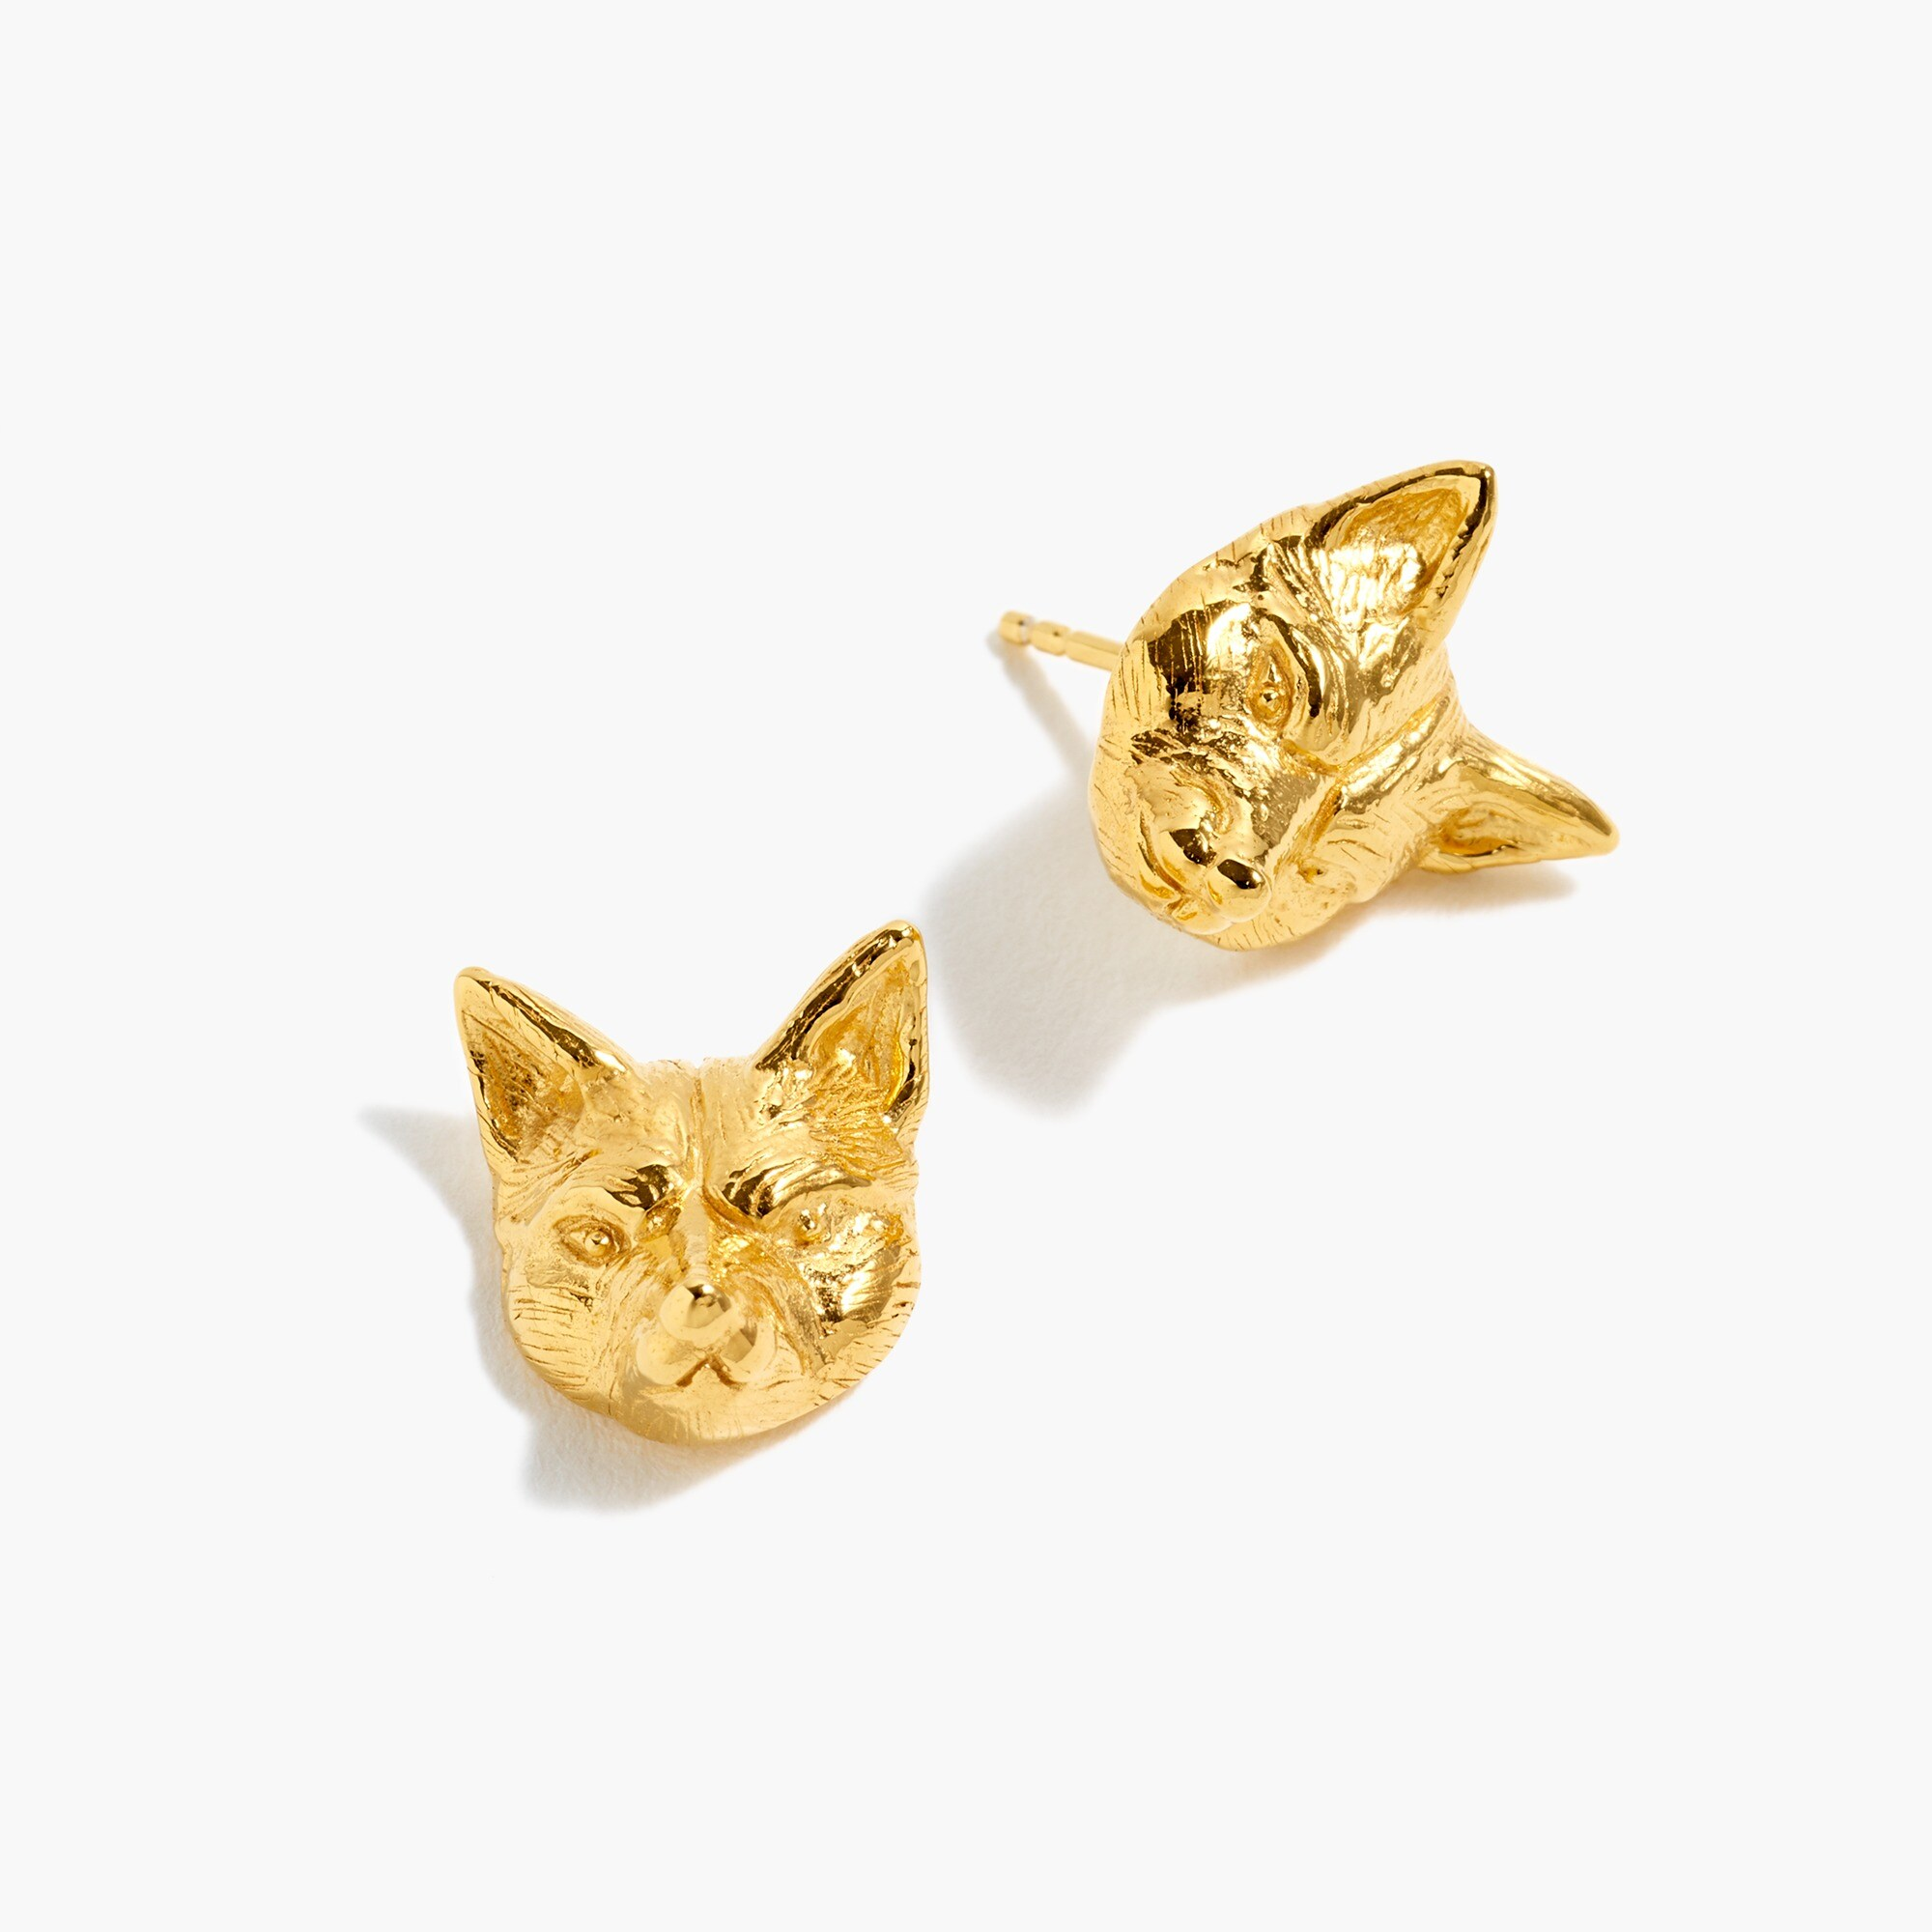 womens Demi-fine 14k gold-plated fox stud earrings